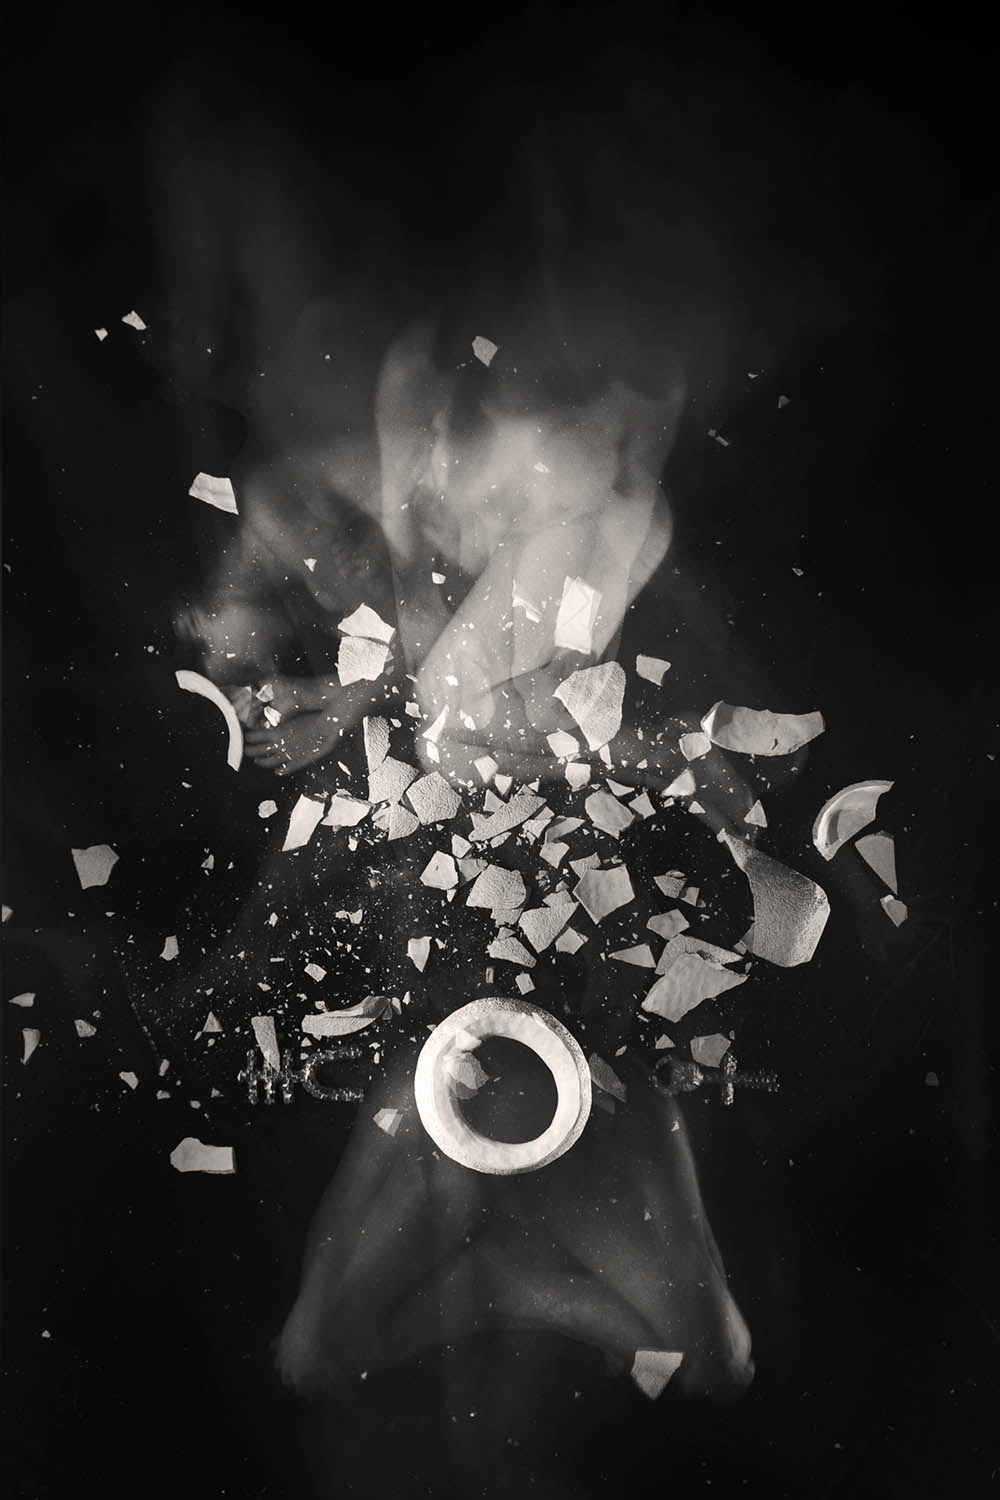 Carla Janse van Rensburg Untitled (10 minute exposure of Collective Pain Vase Ritual) 2018 digital photograph archival ink on Hahnemuhle, 1of20 35.5 x 24.2 cm